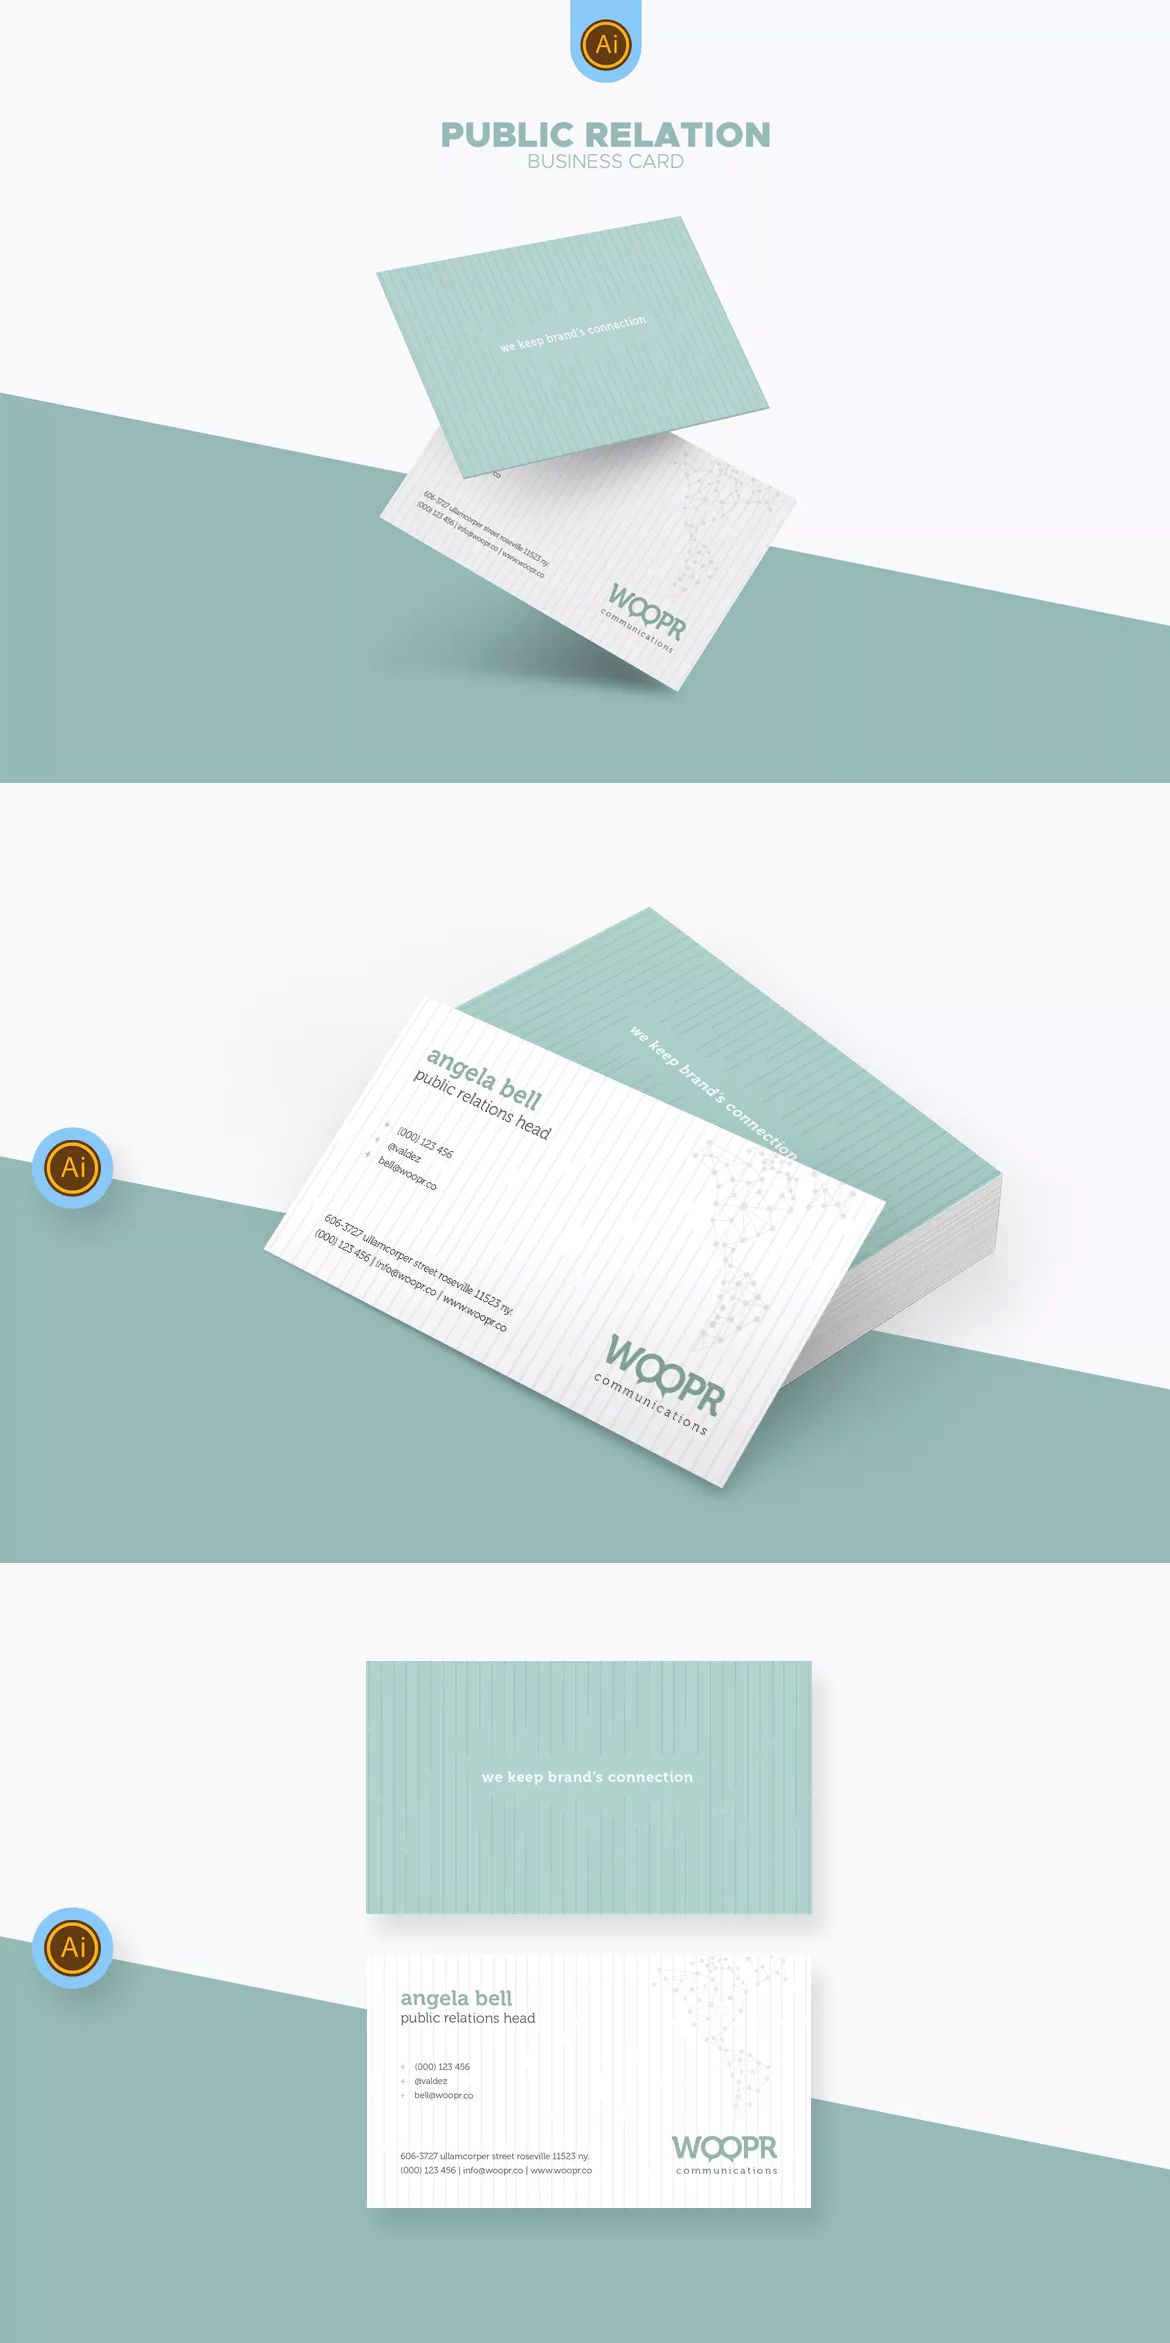 Pr marketing business card template ai eps unlimiteddownloads pr marketing business card 04 by afahmy on envato elements pr marketing business card template ai cheaphphosting Image collections